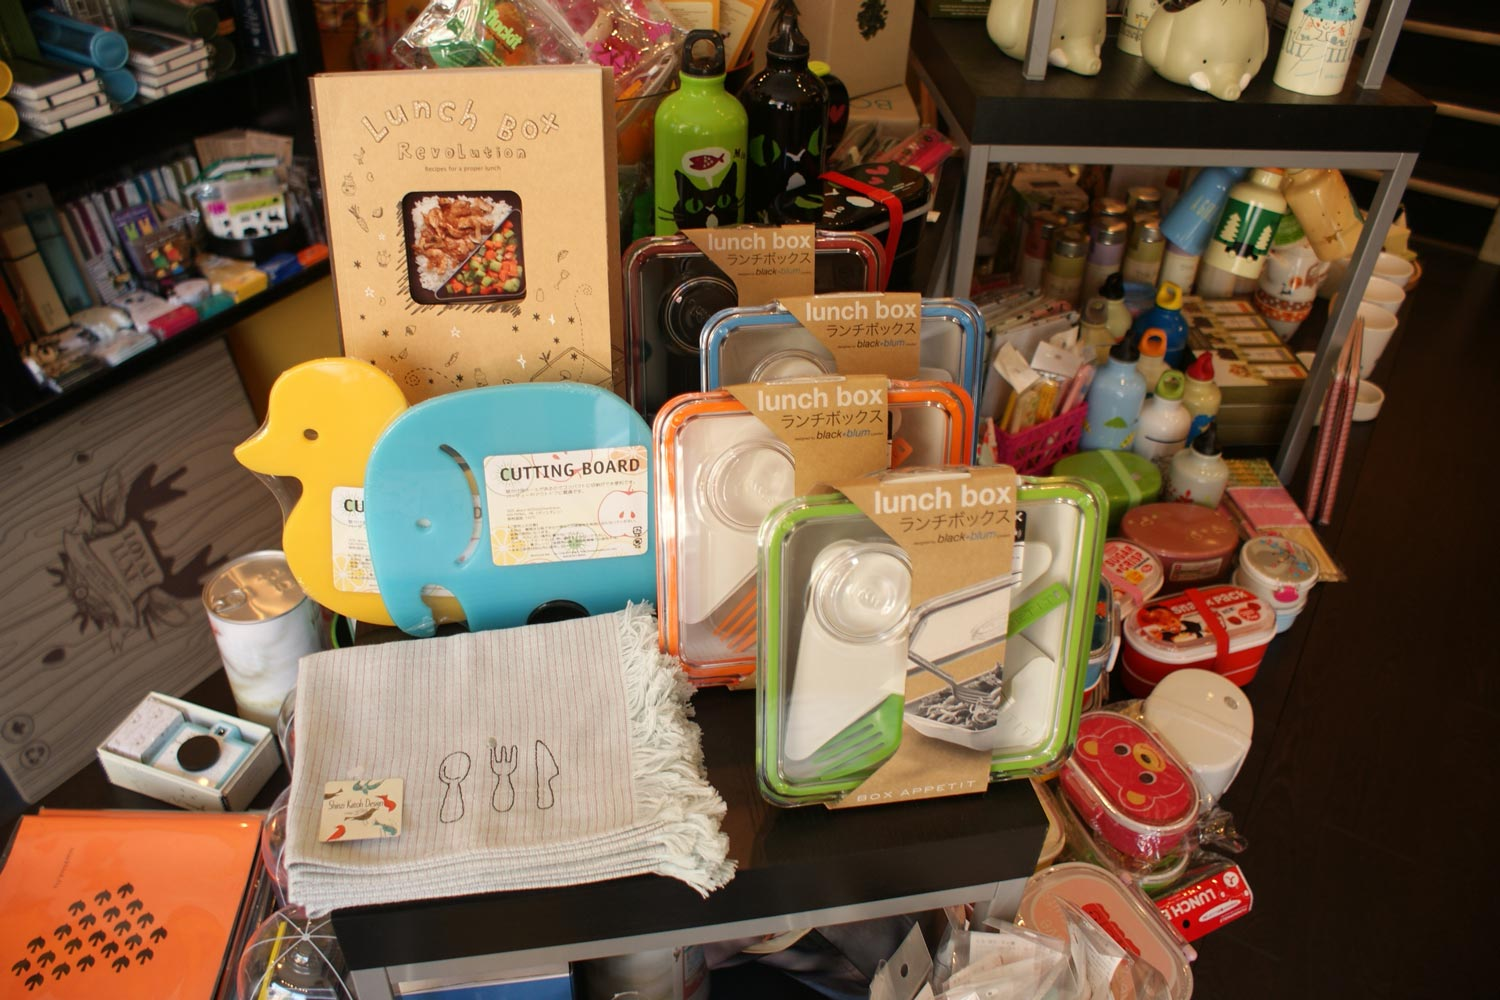 Bentos and cute kitchen goods before the concept had really established itself in the US.